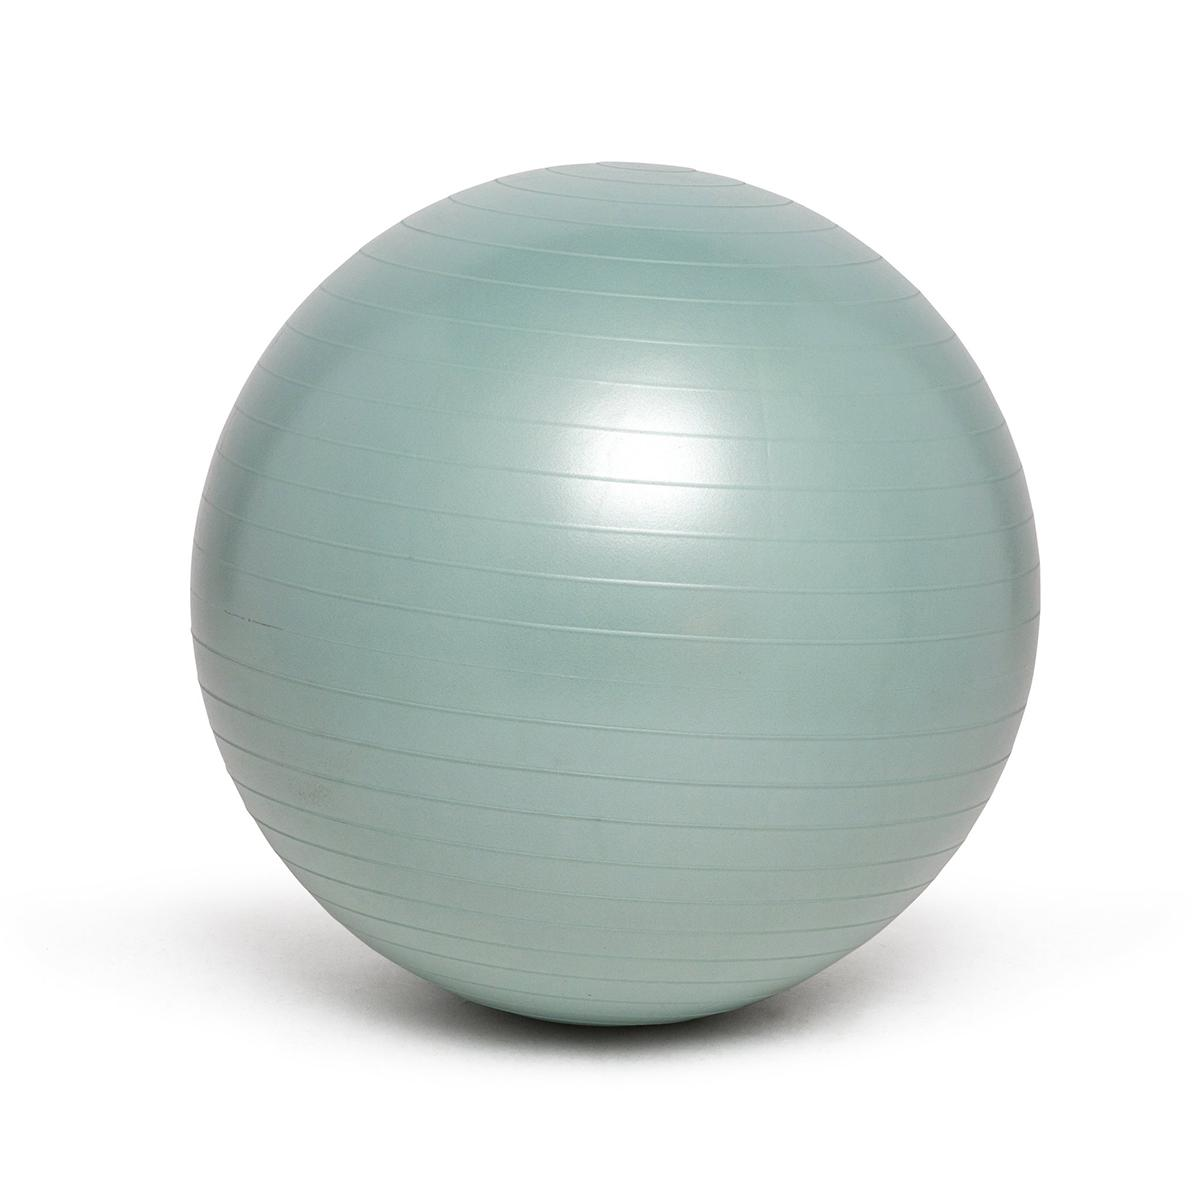 Weighted Balance Ball - Silver 65cm